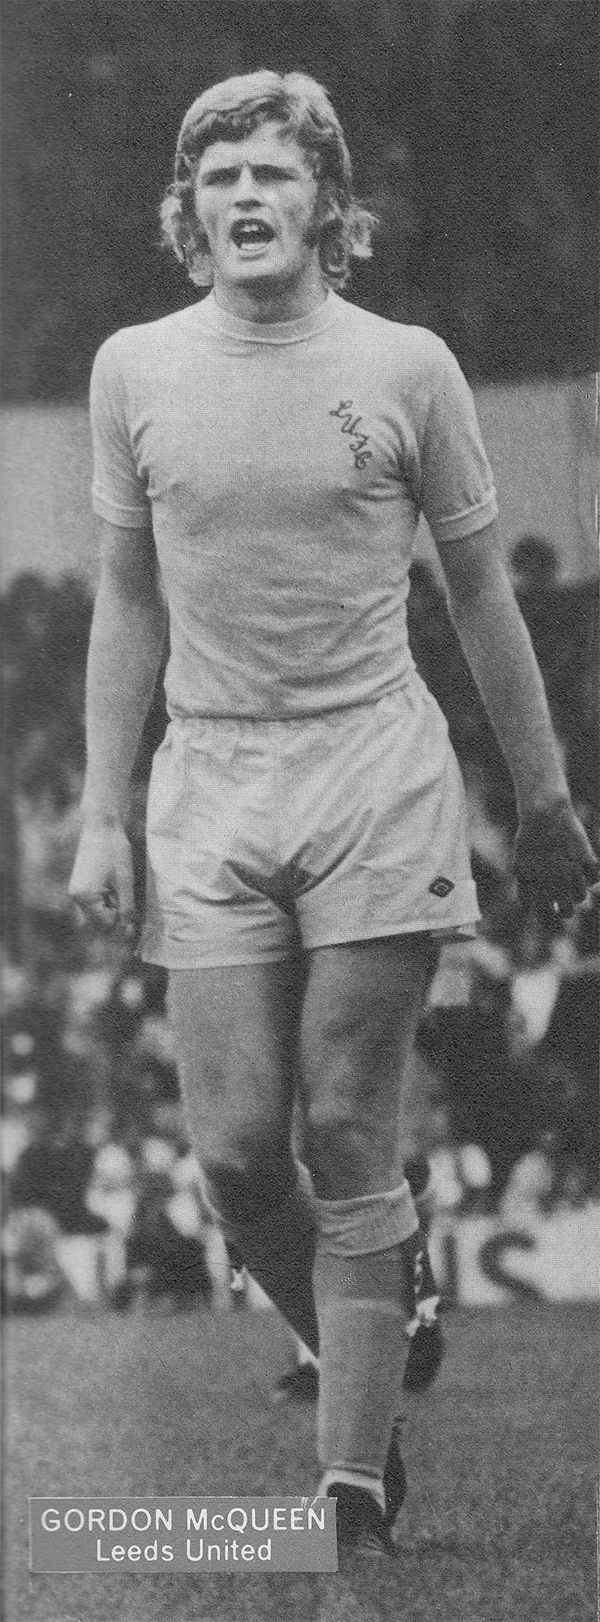 2nd September 1973. Centre half Gordon McQueen still wearing the old still yellow away kit for the visit to White Hart Lane to play Tottenham Hotspur